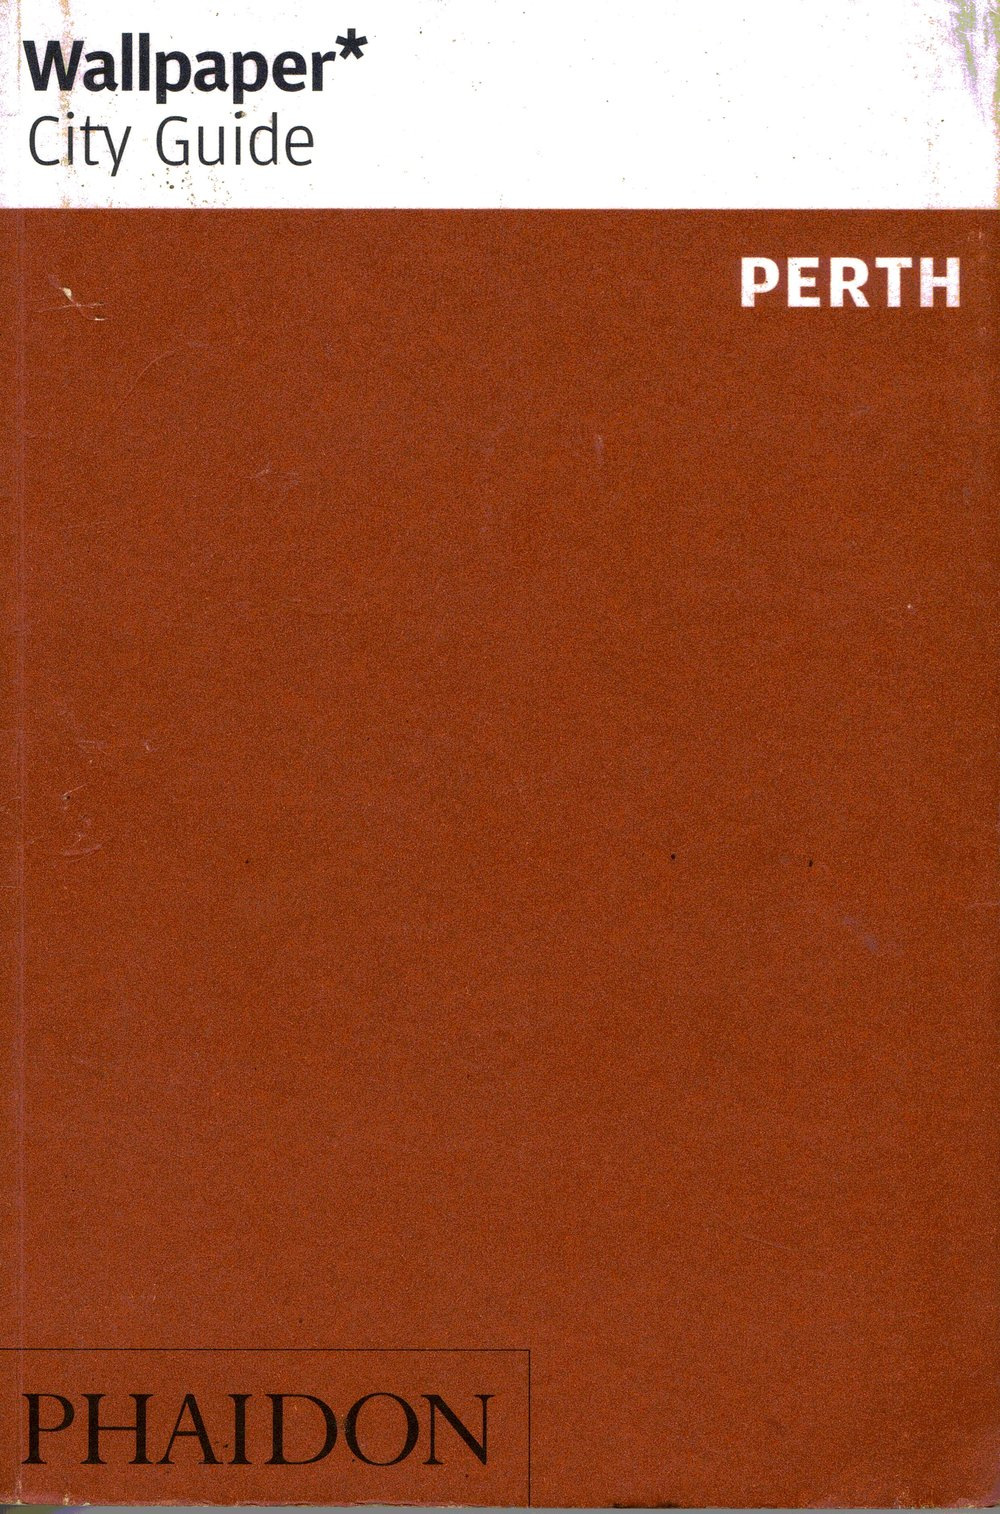 Wallpaper+City+Guide+Perth.jpg